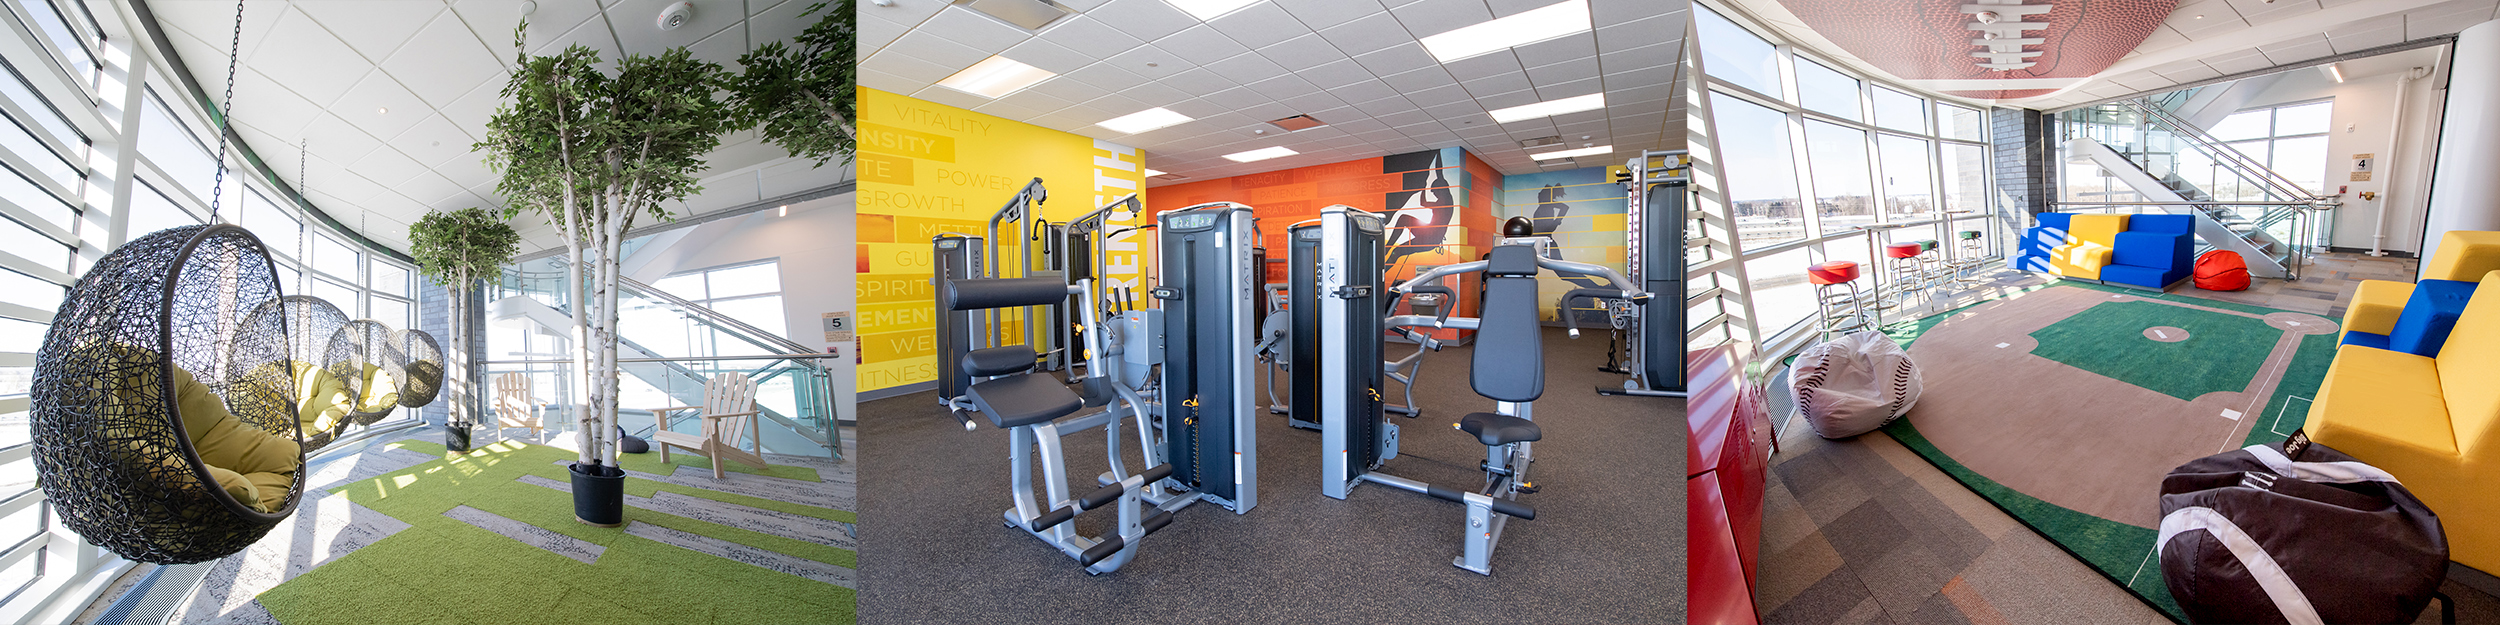 Fun Zones and Wellness Spaces at Summit Headquarters